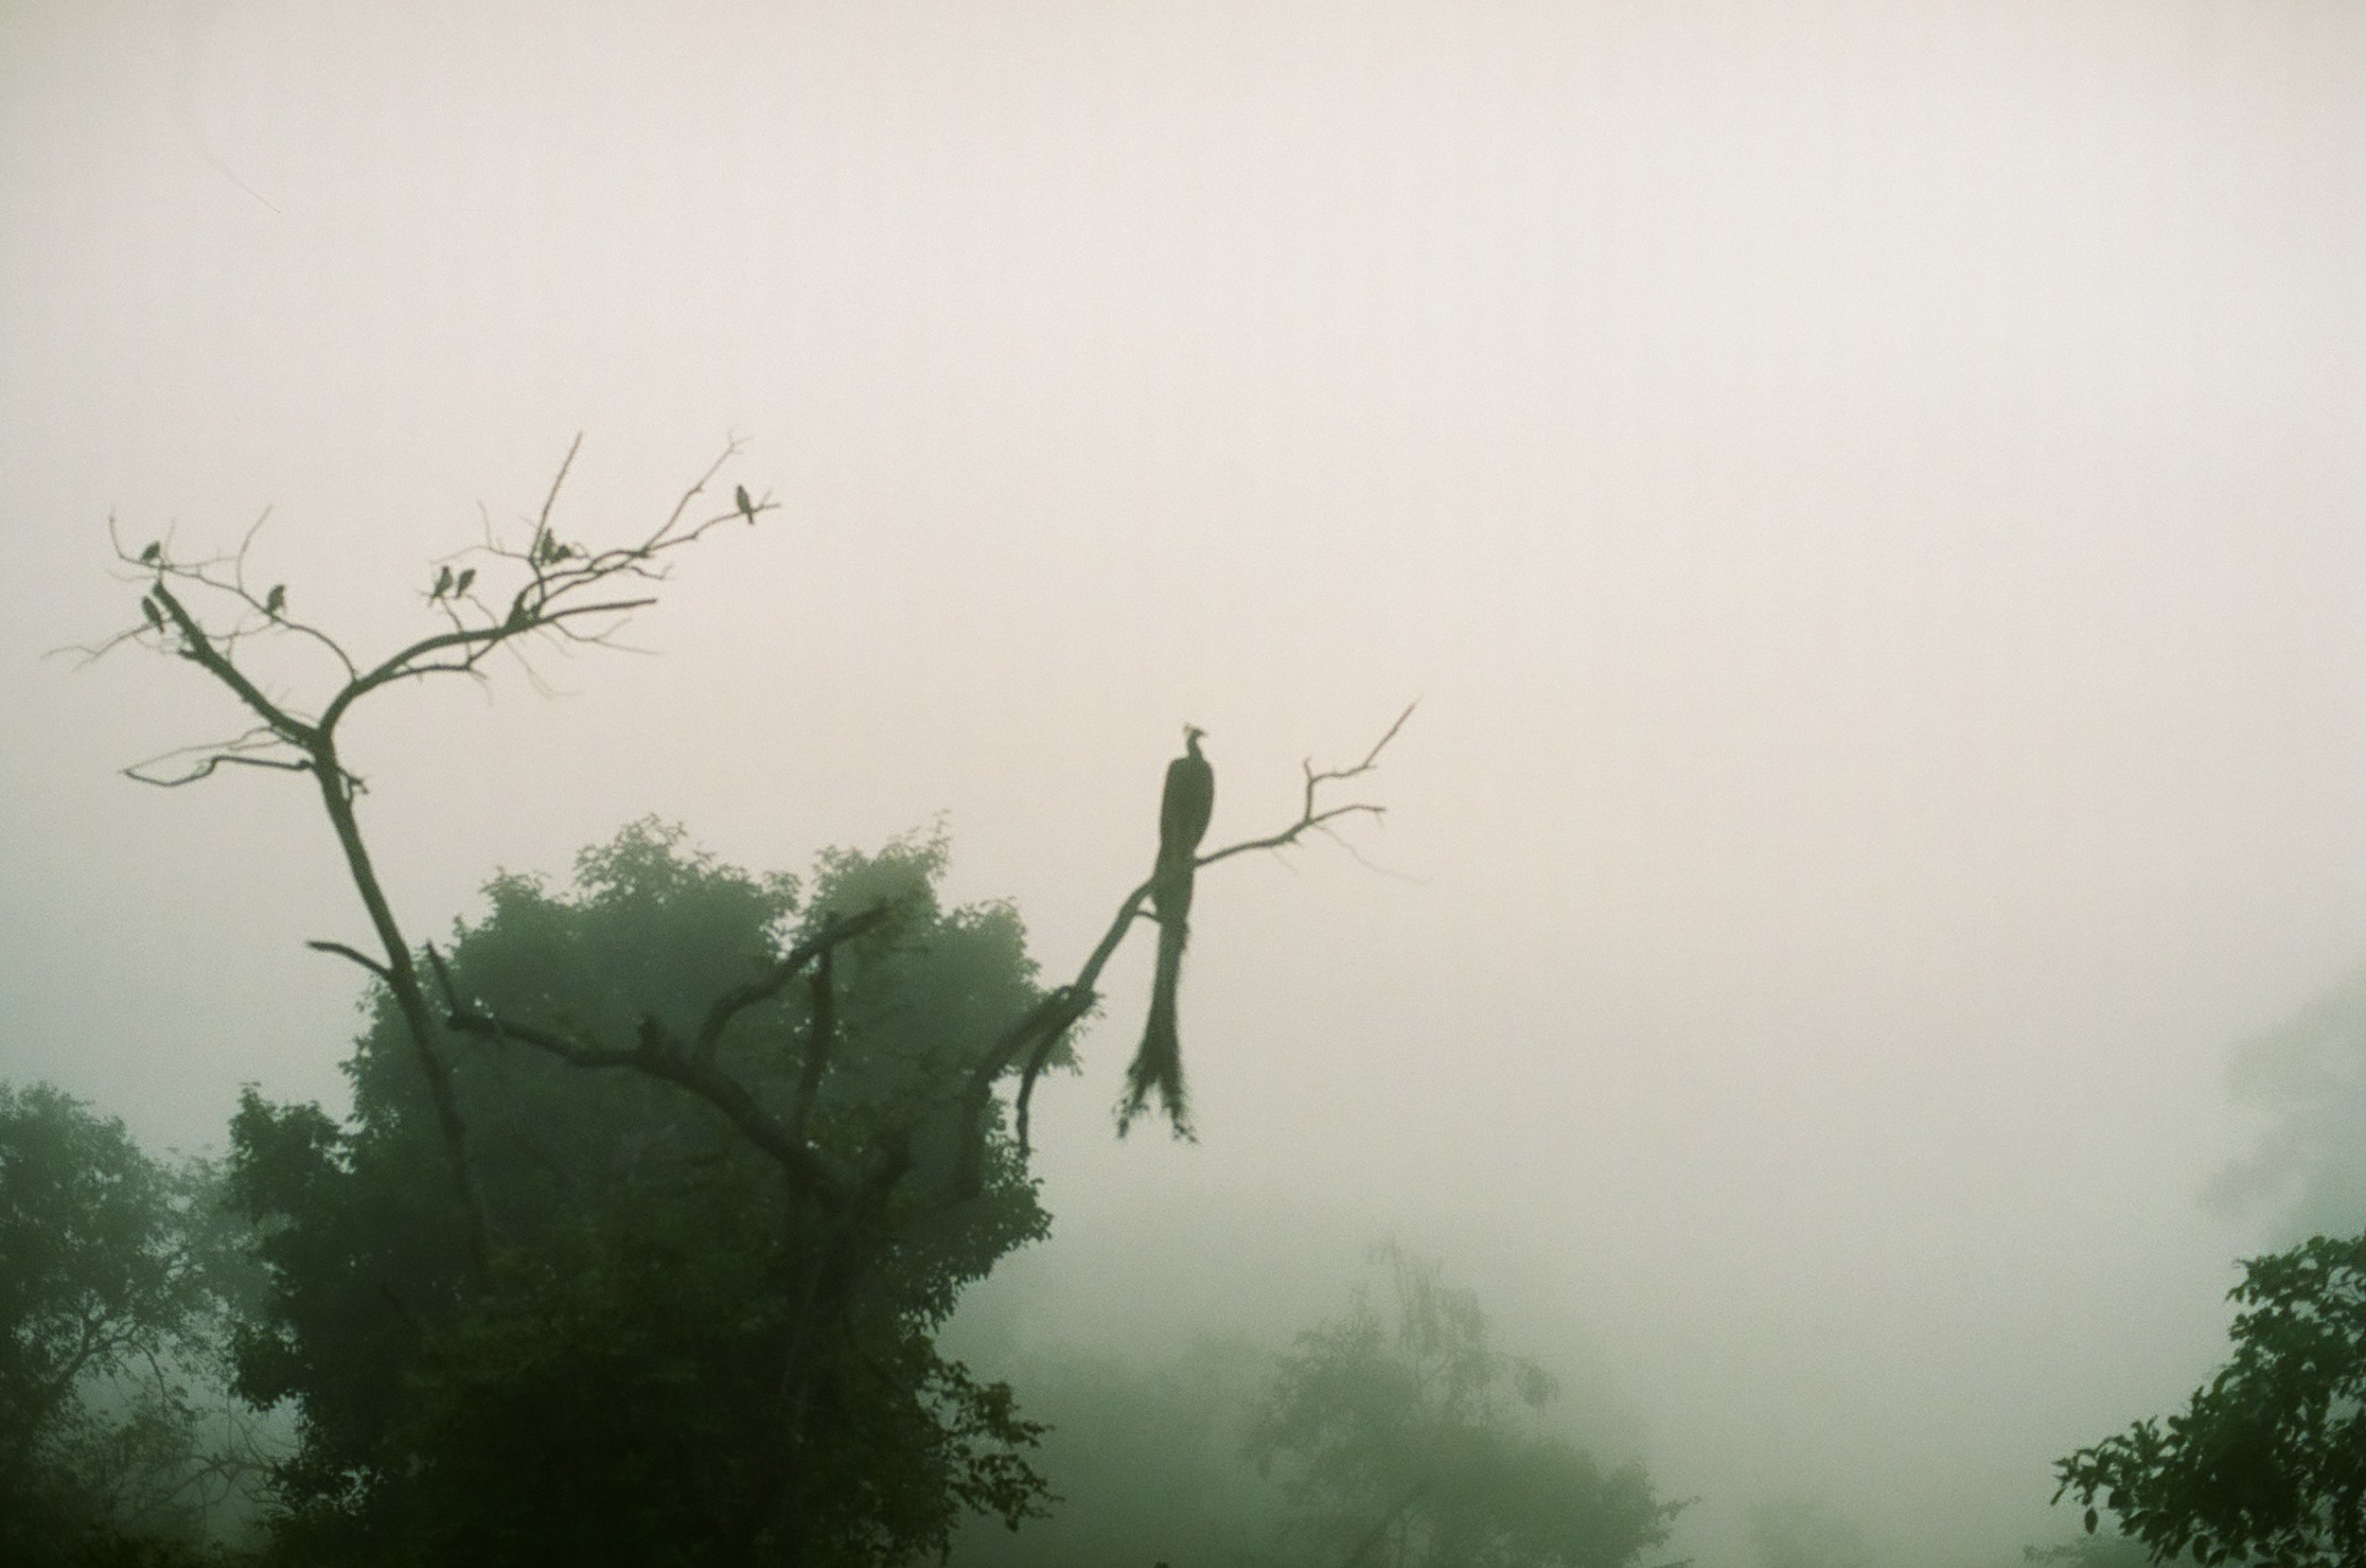 A peacock in the morning fog.